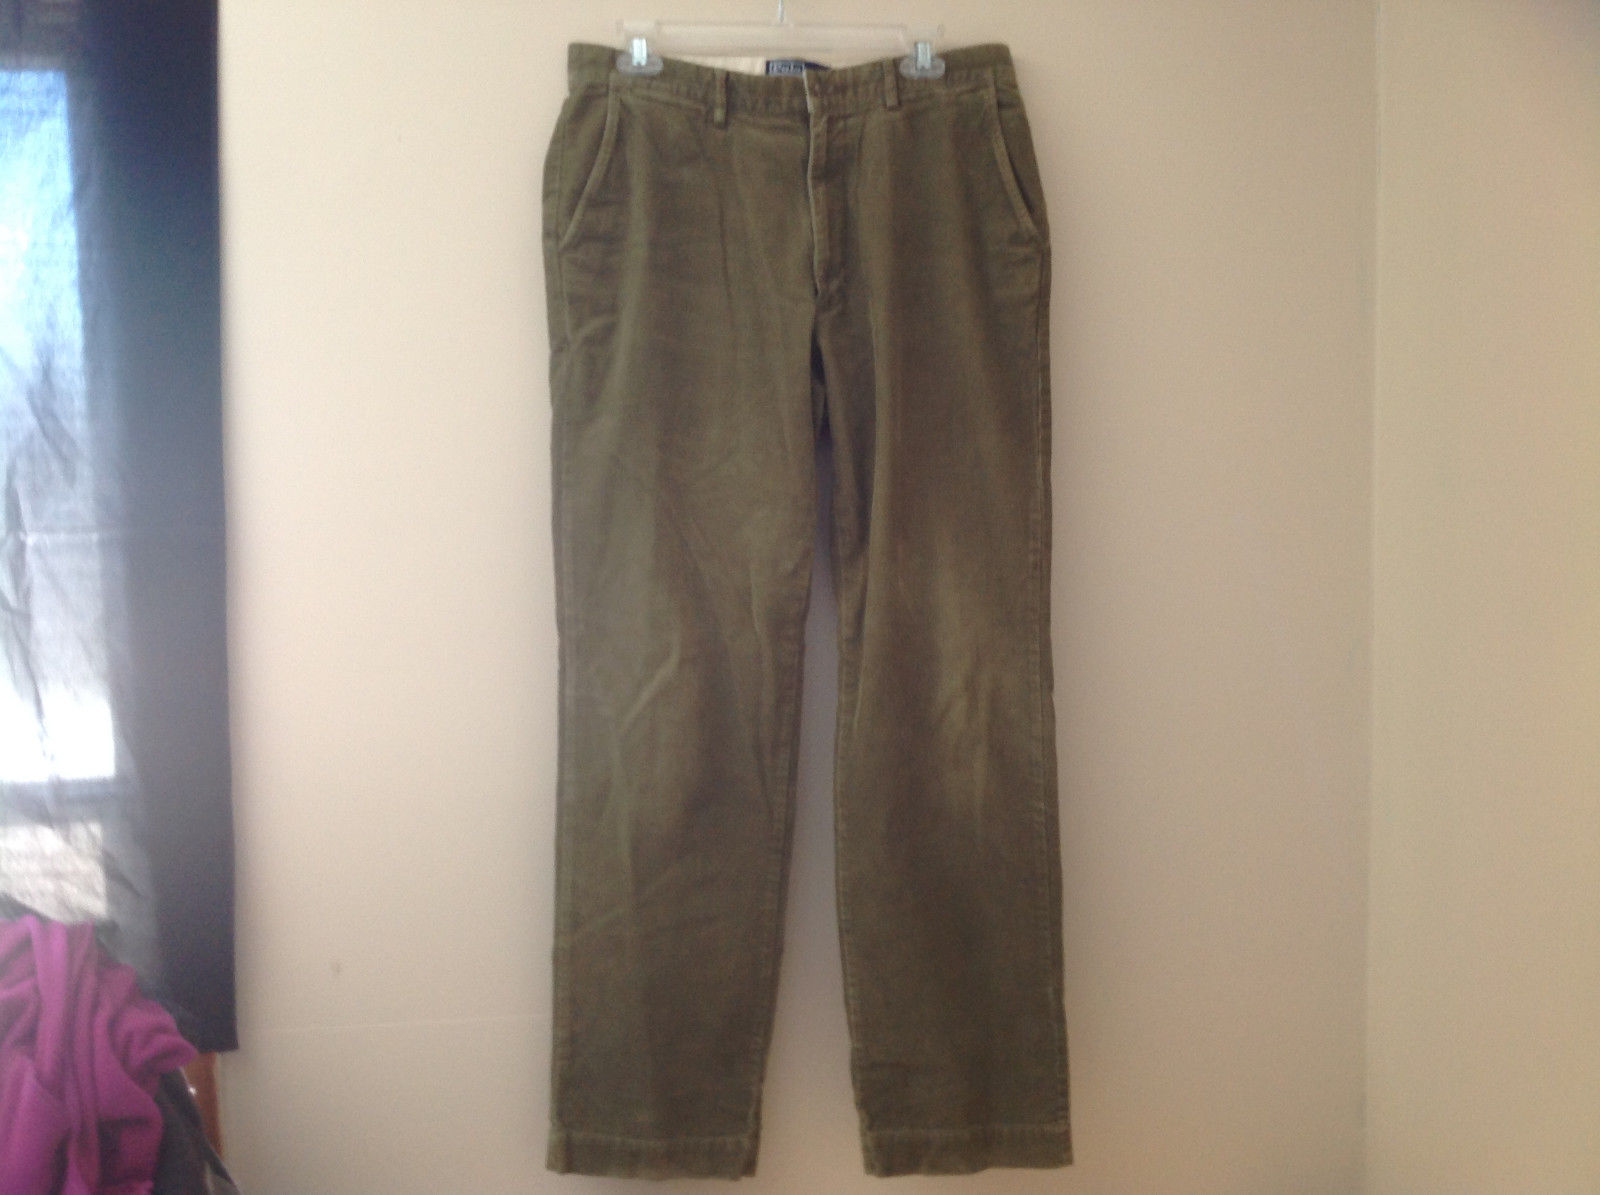 Olive Green Corduroy Ralph Lauren 4 Pocket Pants Button Zipper Closure Size 32